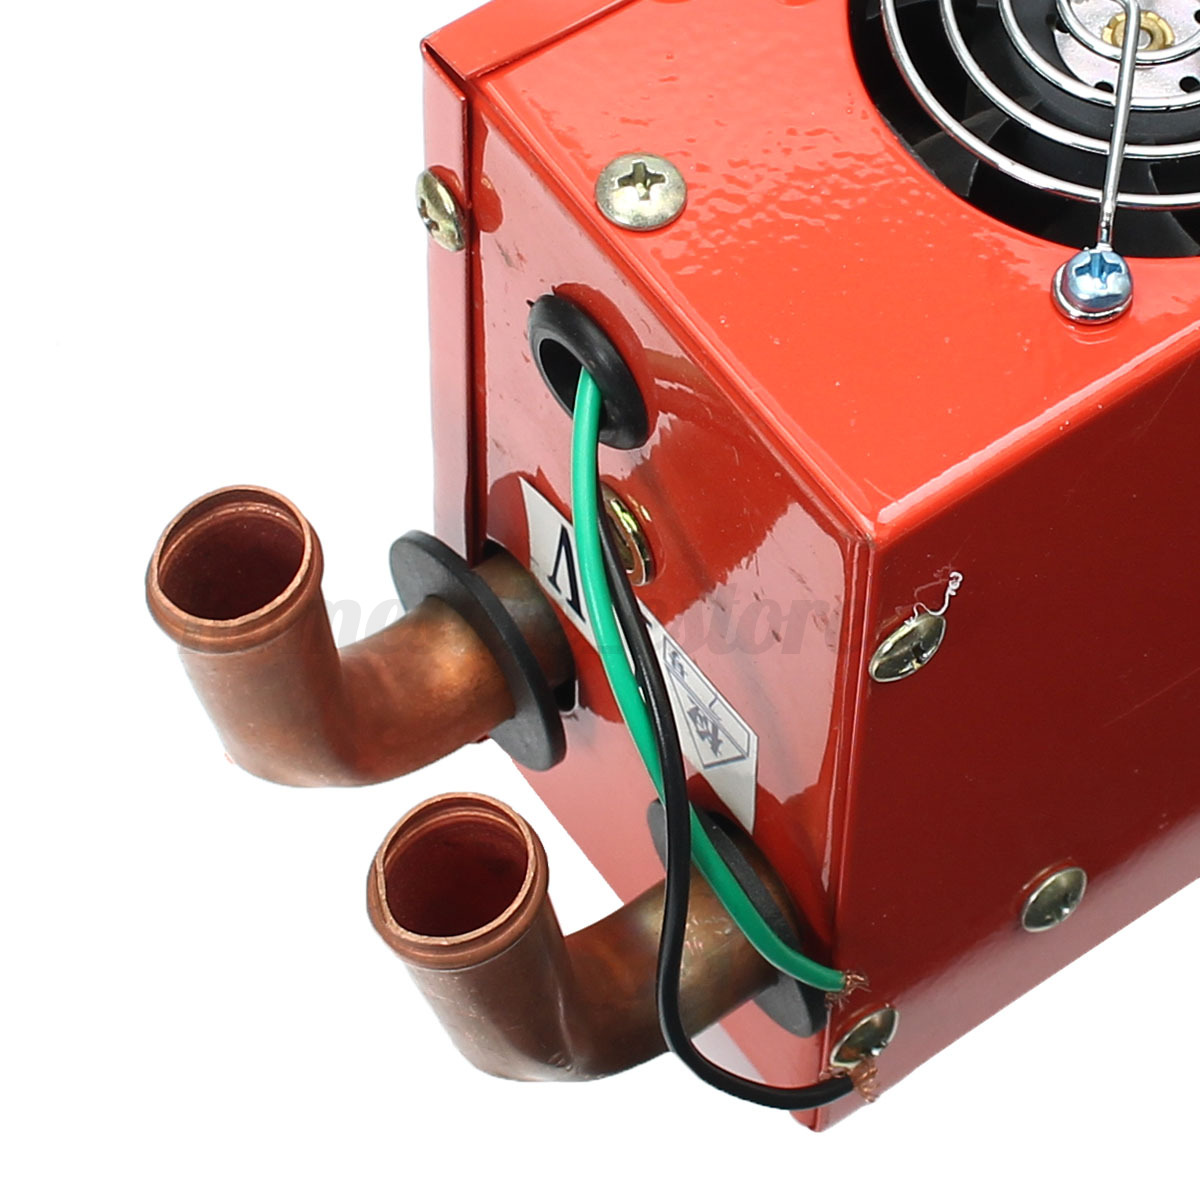 3-Hole-12V-24W-Portable-Car-Vehicle-Heating-Cooling-Heater-Demister-Defroster-1 thumbnail 6